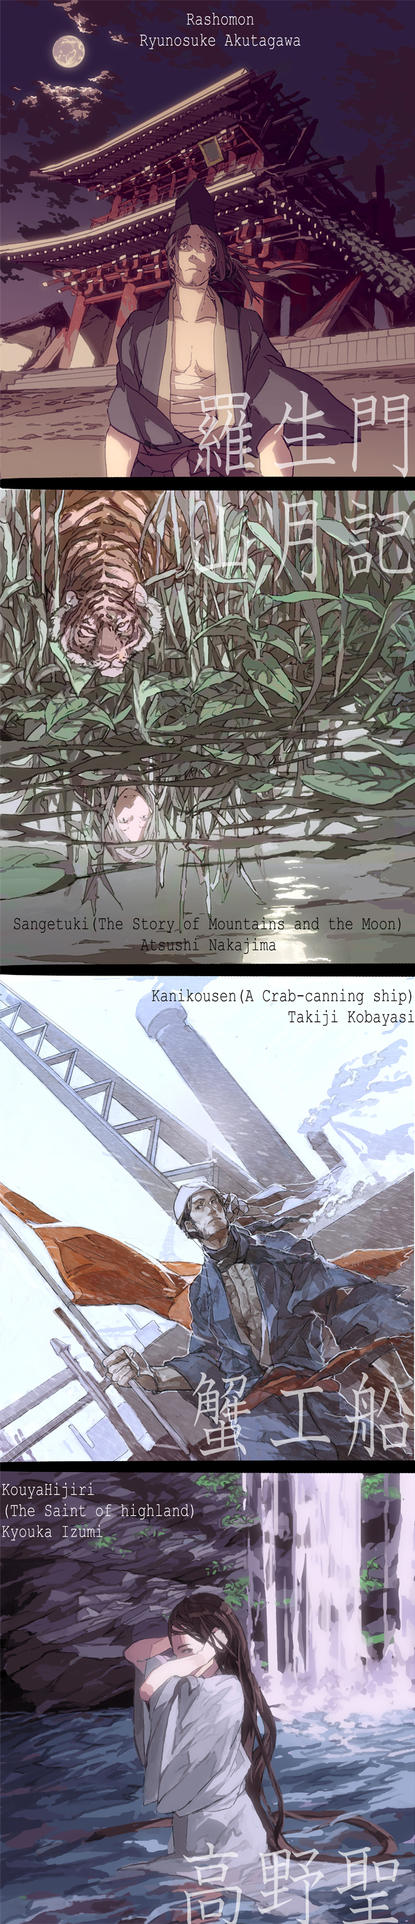 Perspectives of Japanese Modern Literature by hira-geco